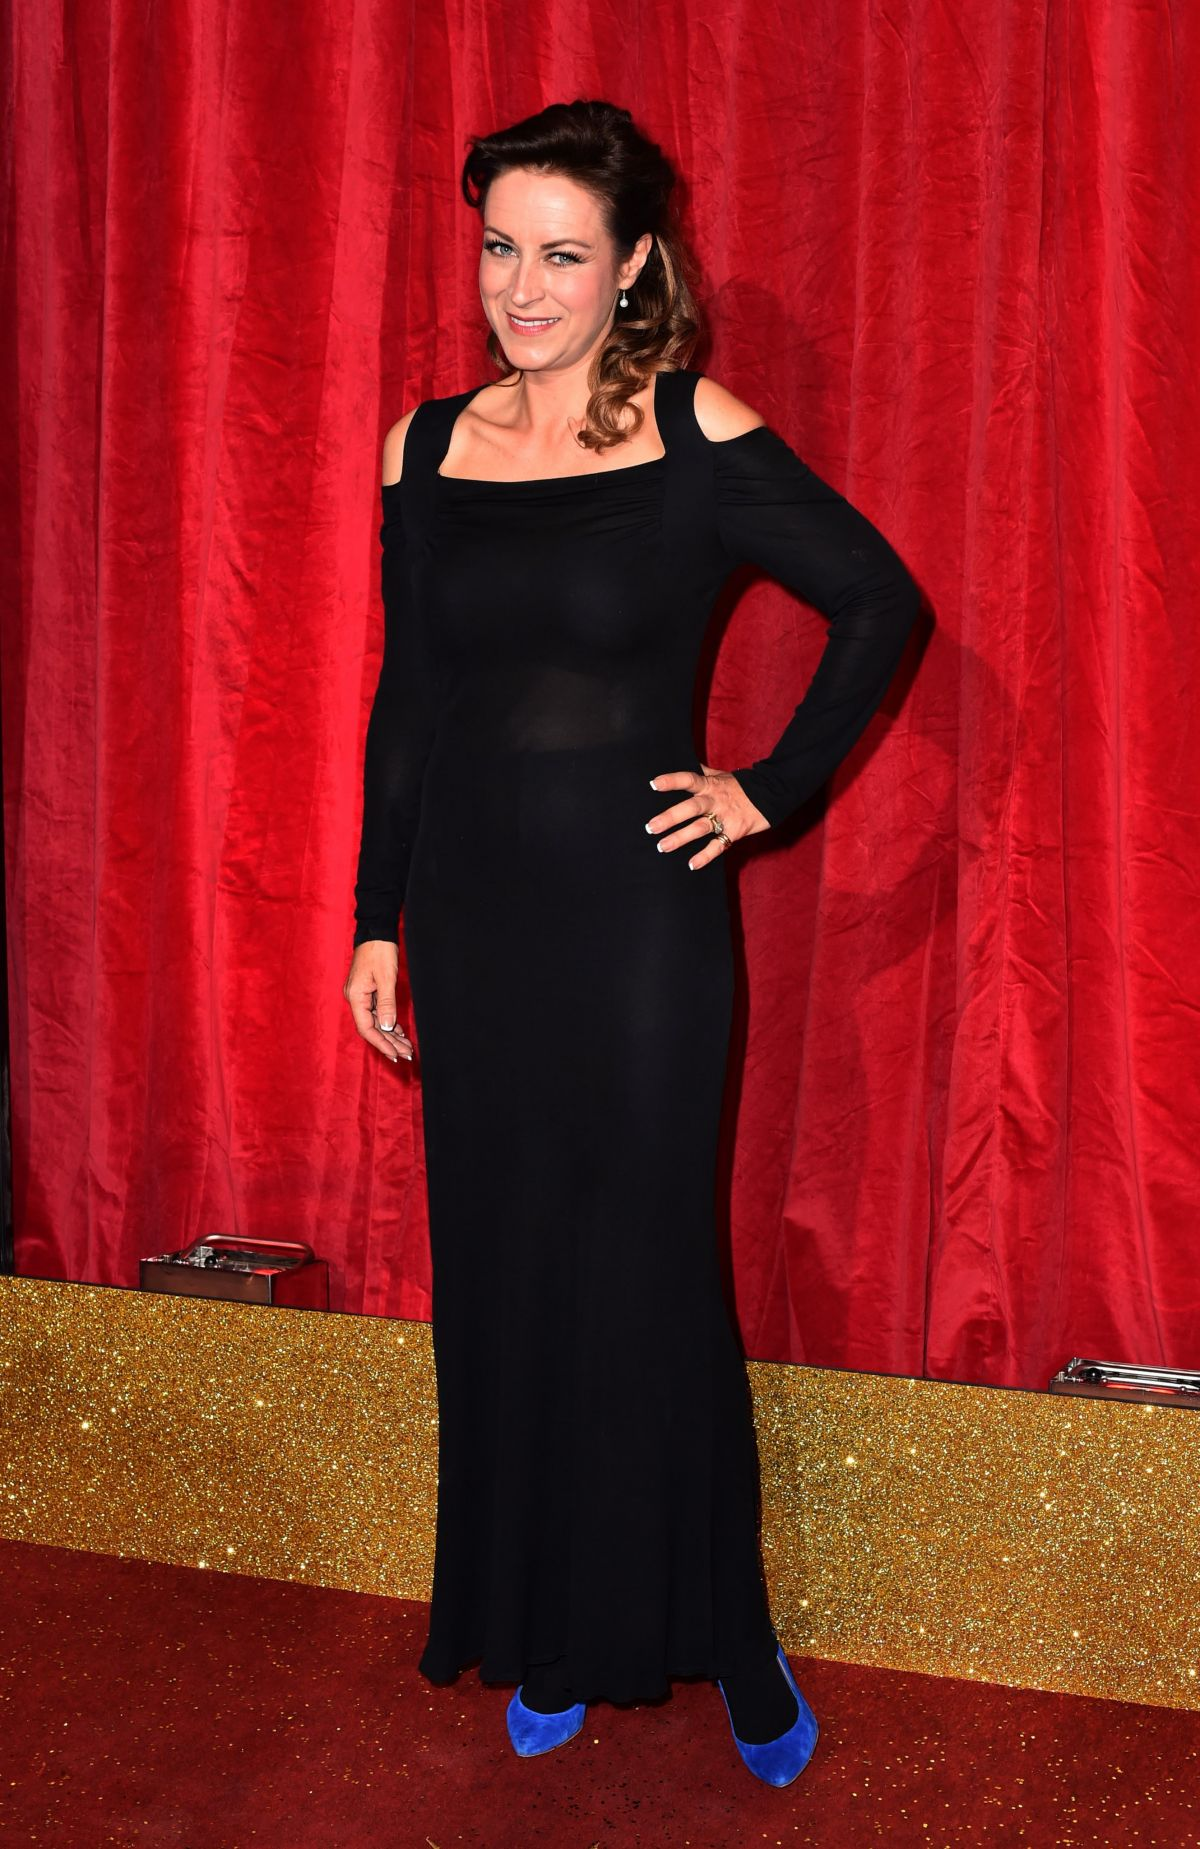 ELISABETH DERMOT WALSH at British Soap Awards 2016 in London 05/28/2016